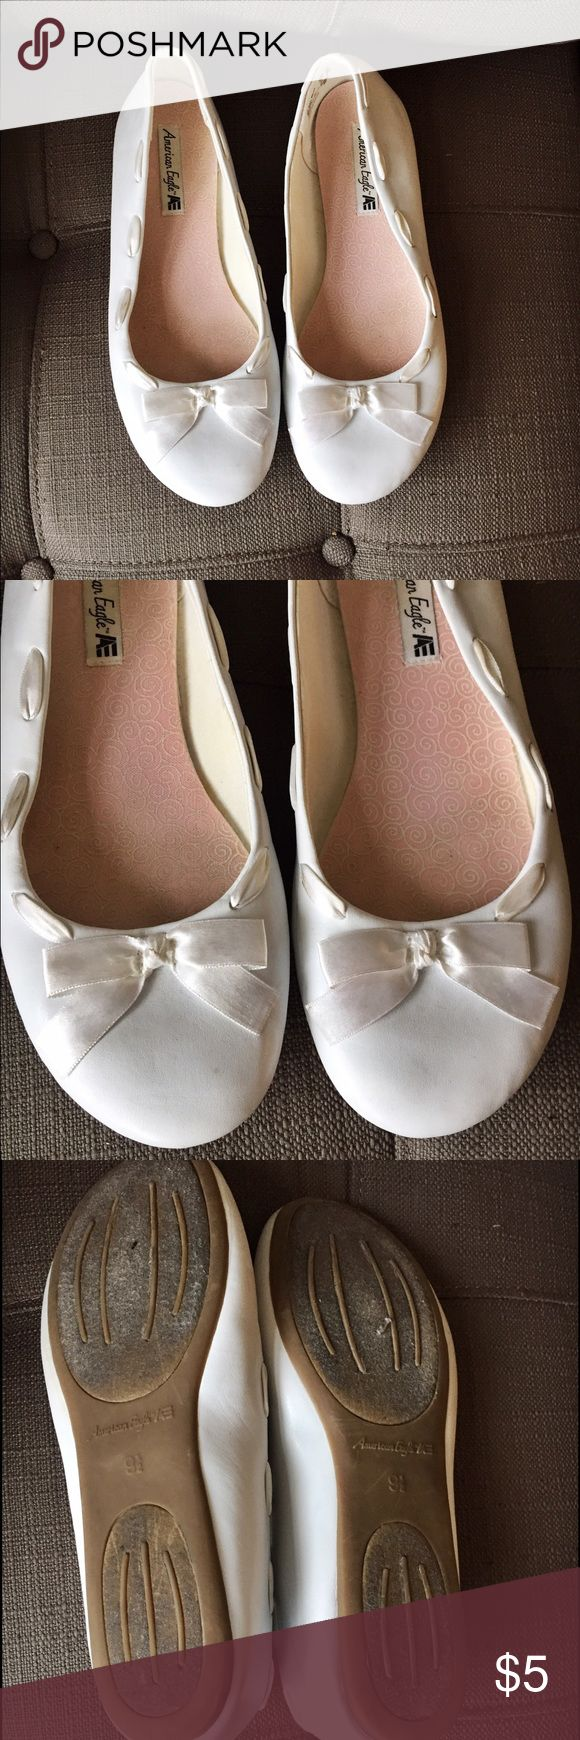 Women's American Eagle white slip-on shoes American Eagle white flat slip-on's. Size 9 1/2 American Eagle by Payless Shoes Flats & Loafers